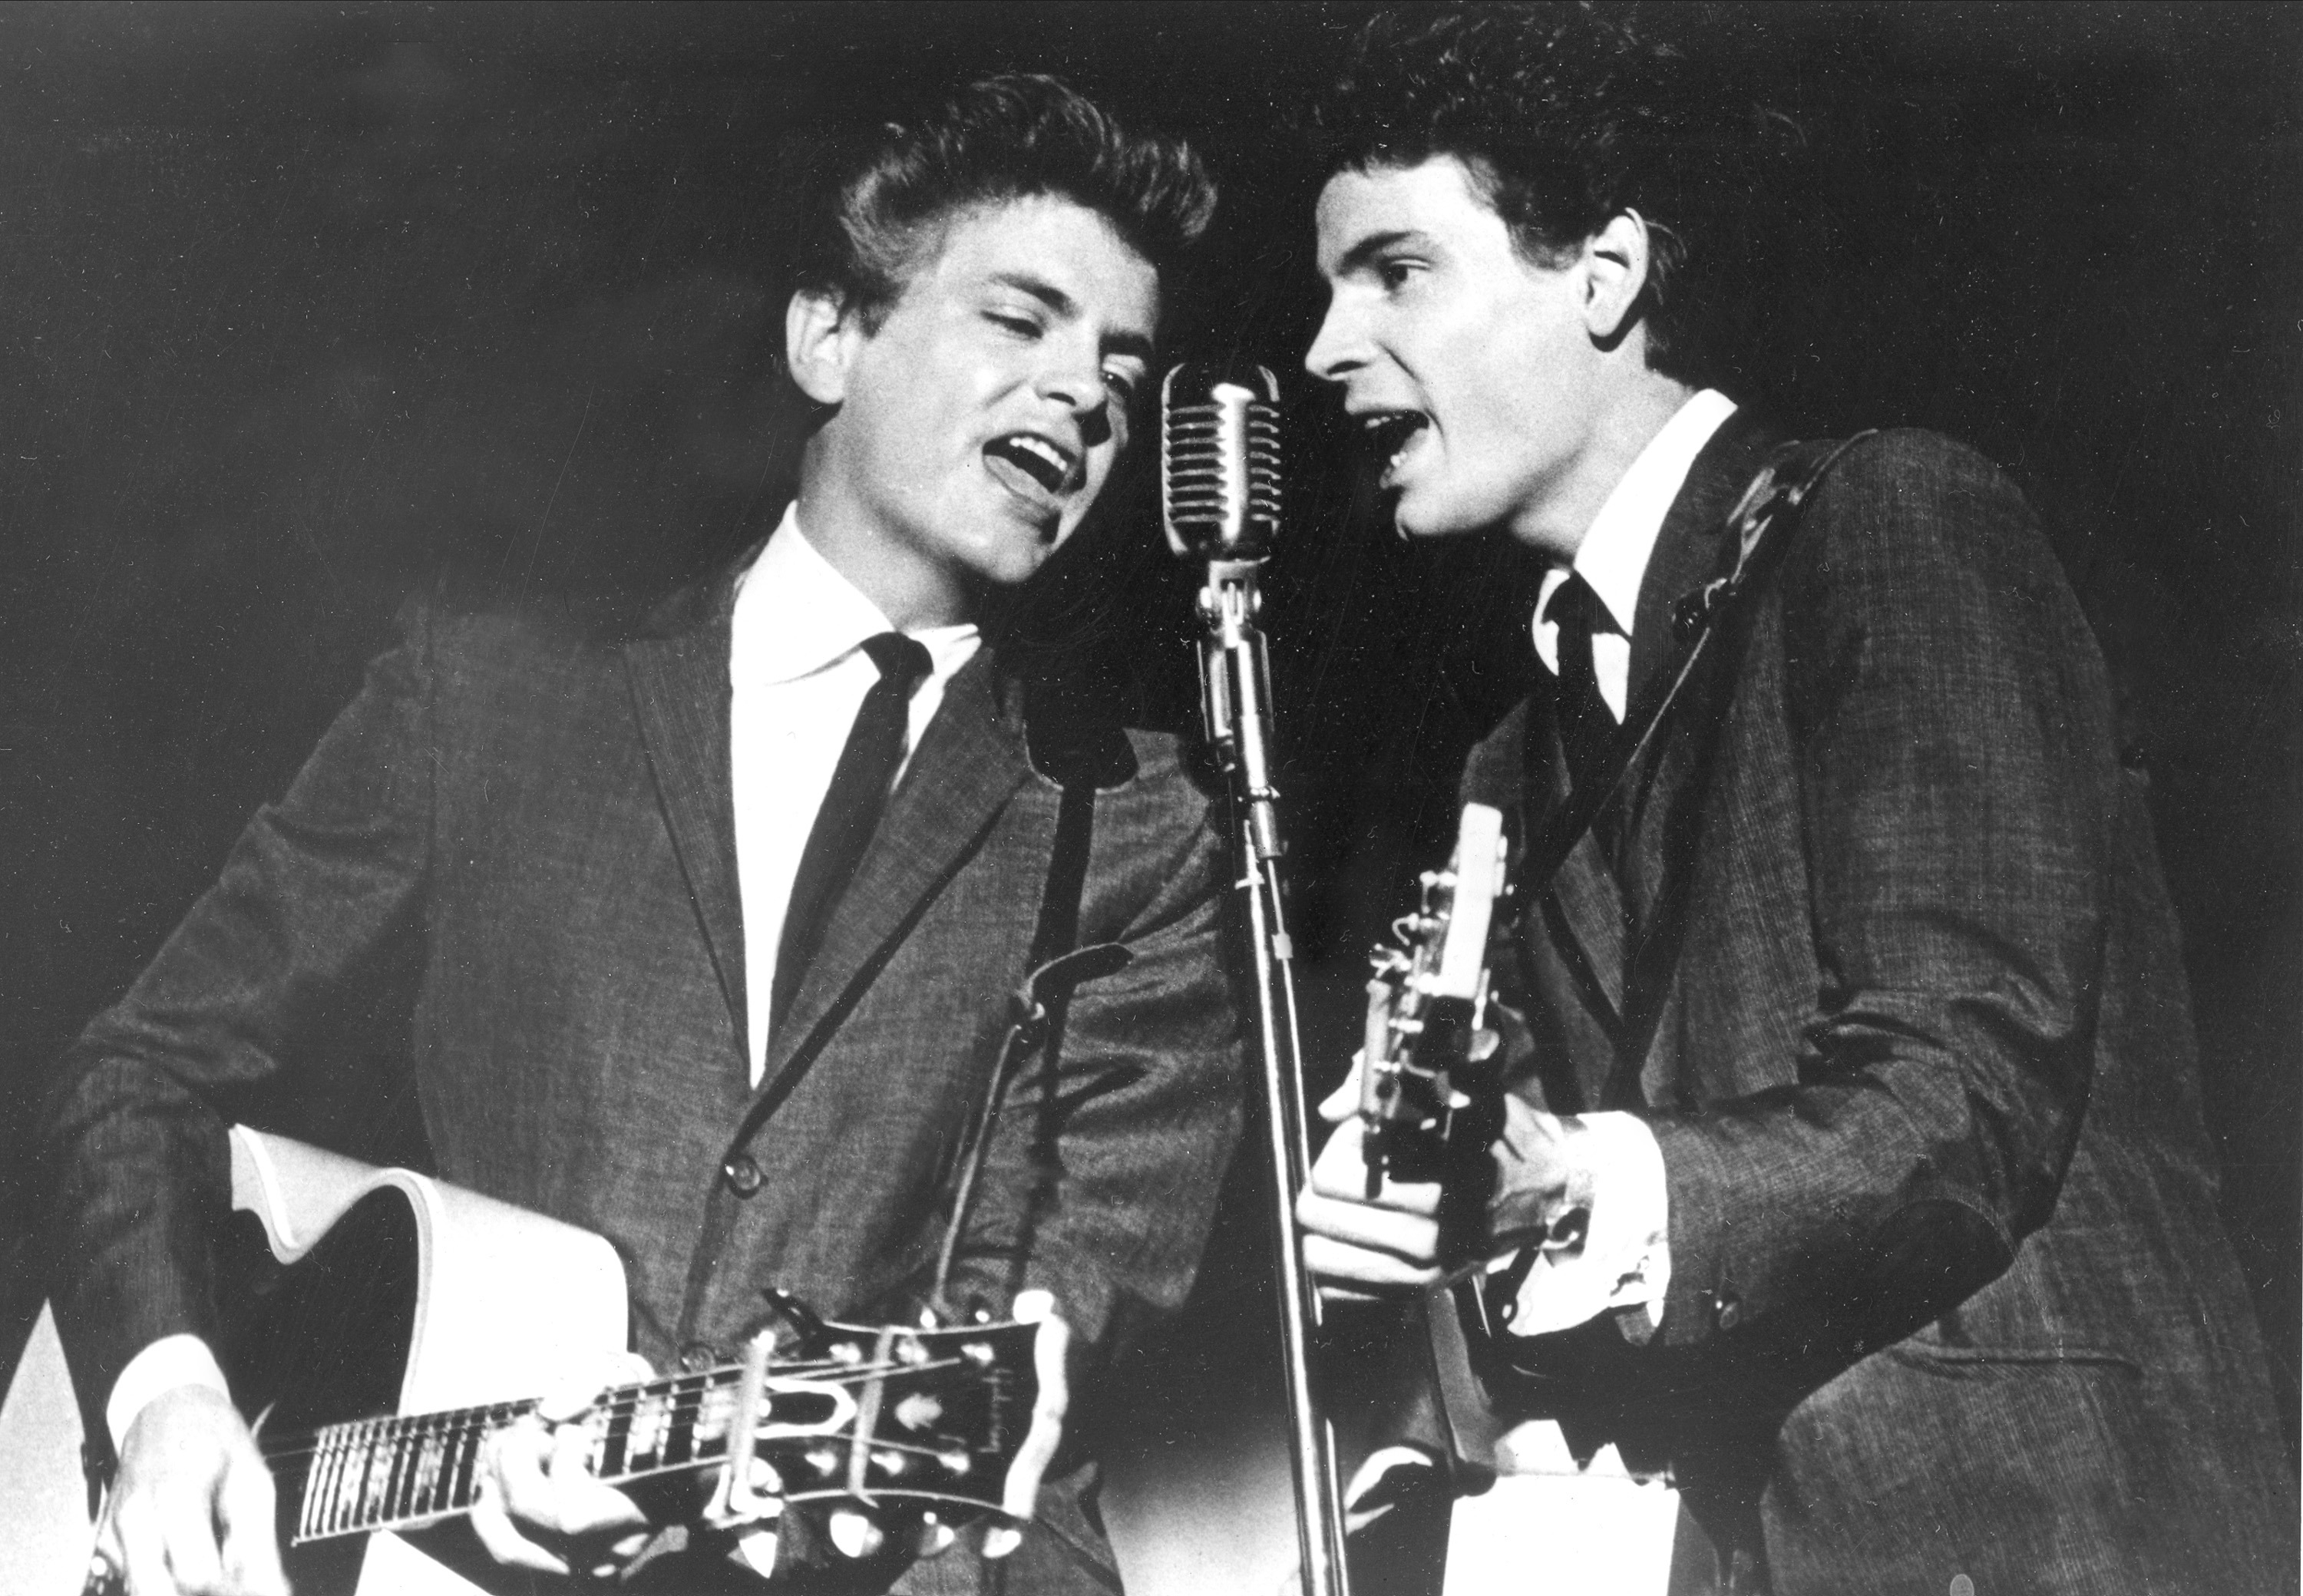 The Rock and Roll Hall of Fame has announced a tribute concert honoring Don and Phil Everly of The Everly Brothers on Oct. 25 in Cleveland.